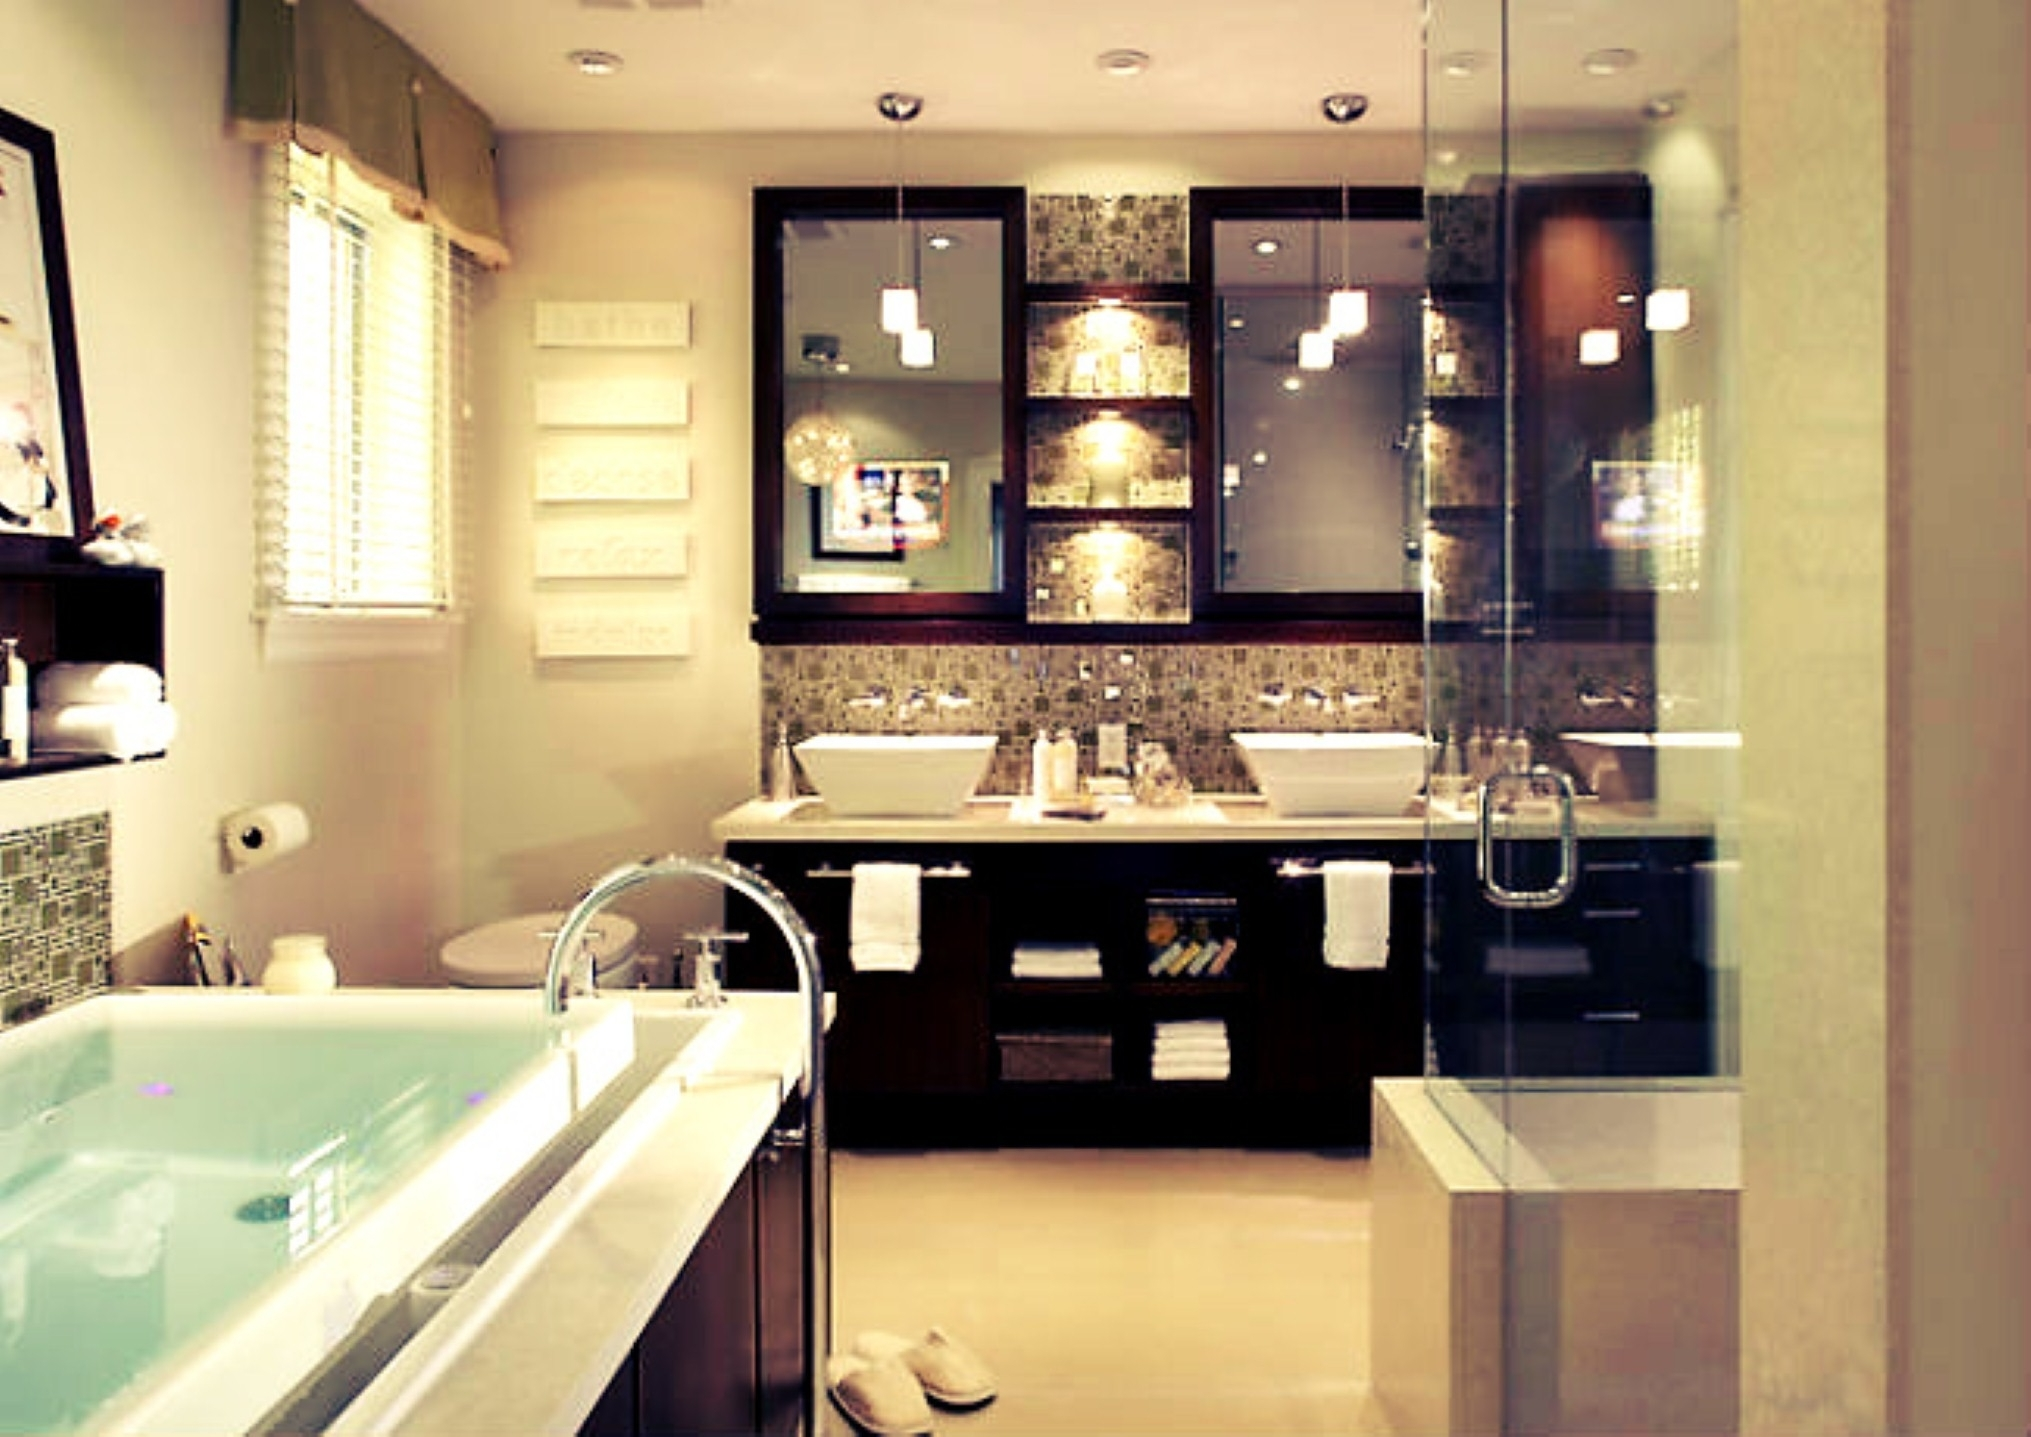 Stylish Bathroom Remodel With Various Examples Of Best Decoration Of Bathroom To The Inspiration Design Idea (View 19 of 23)